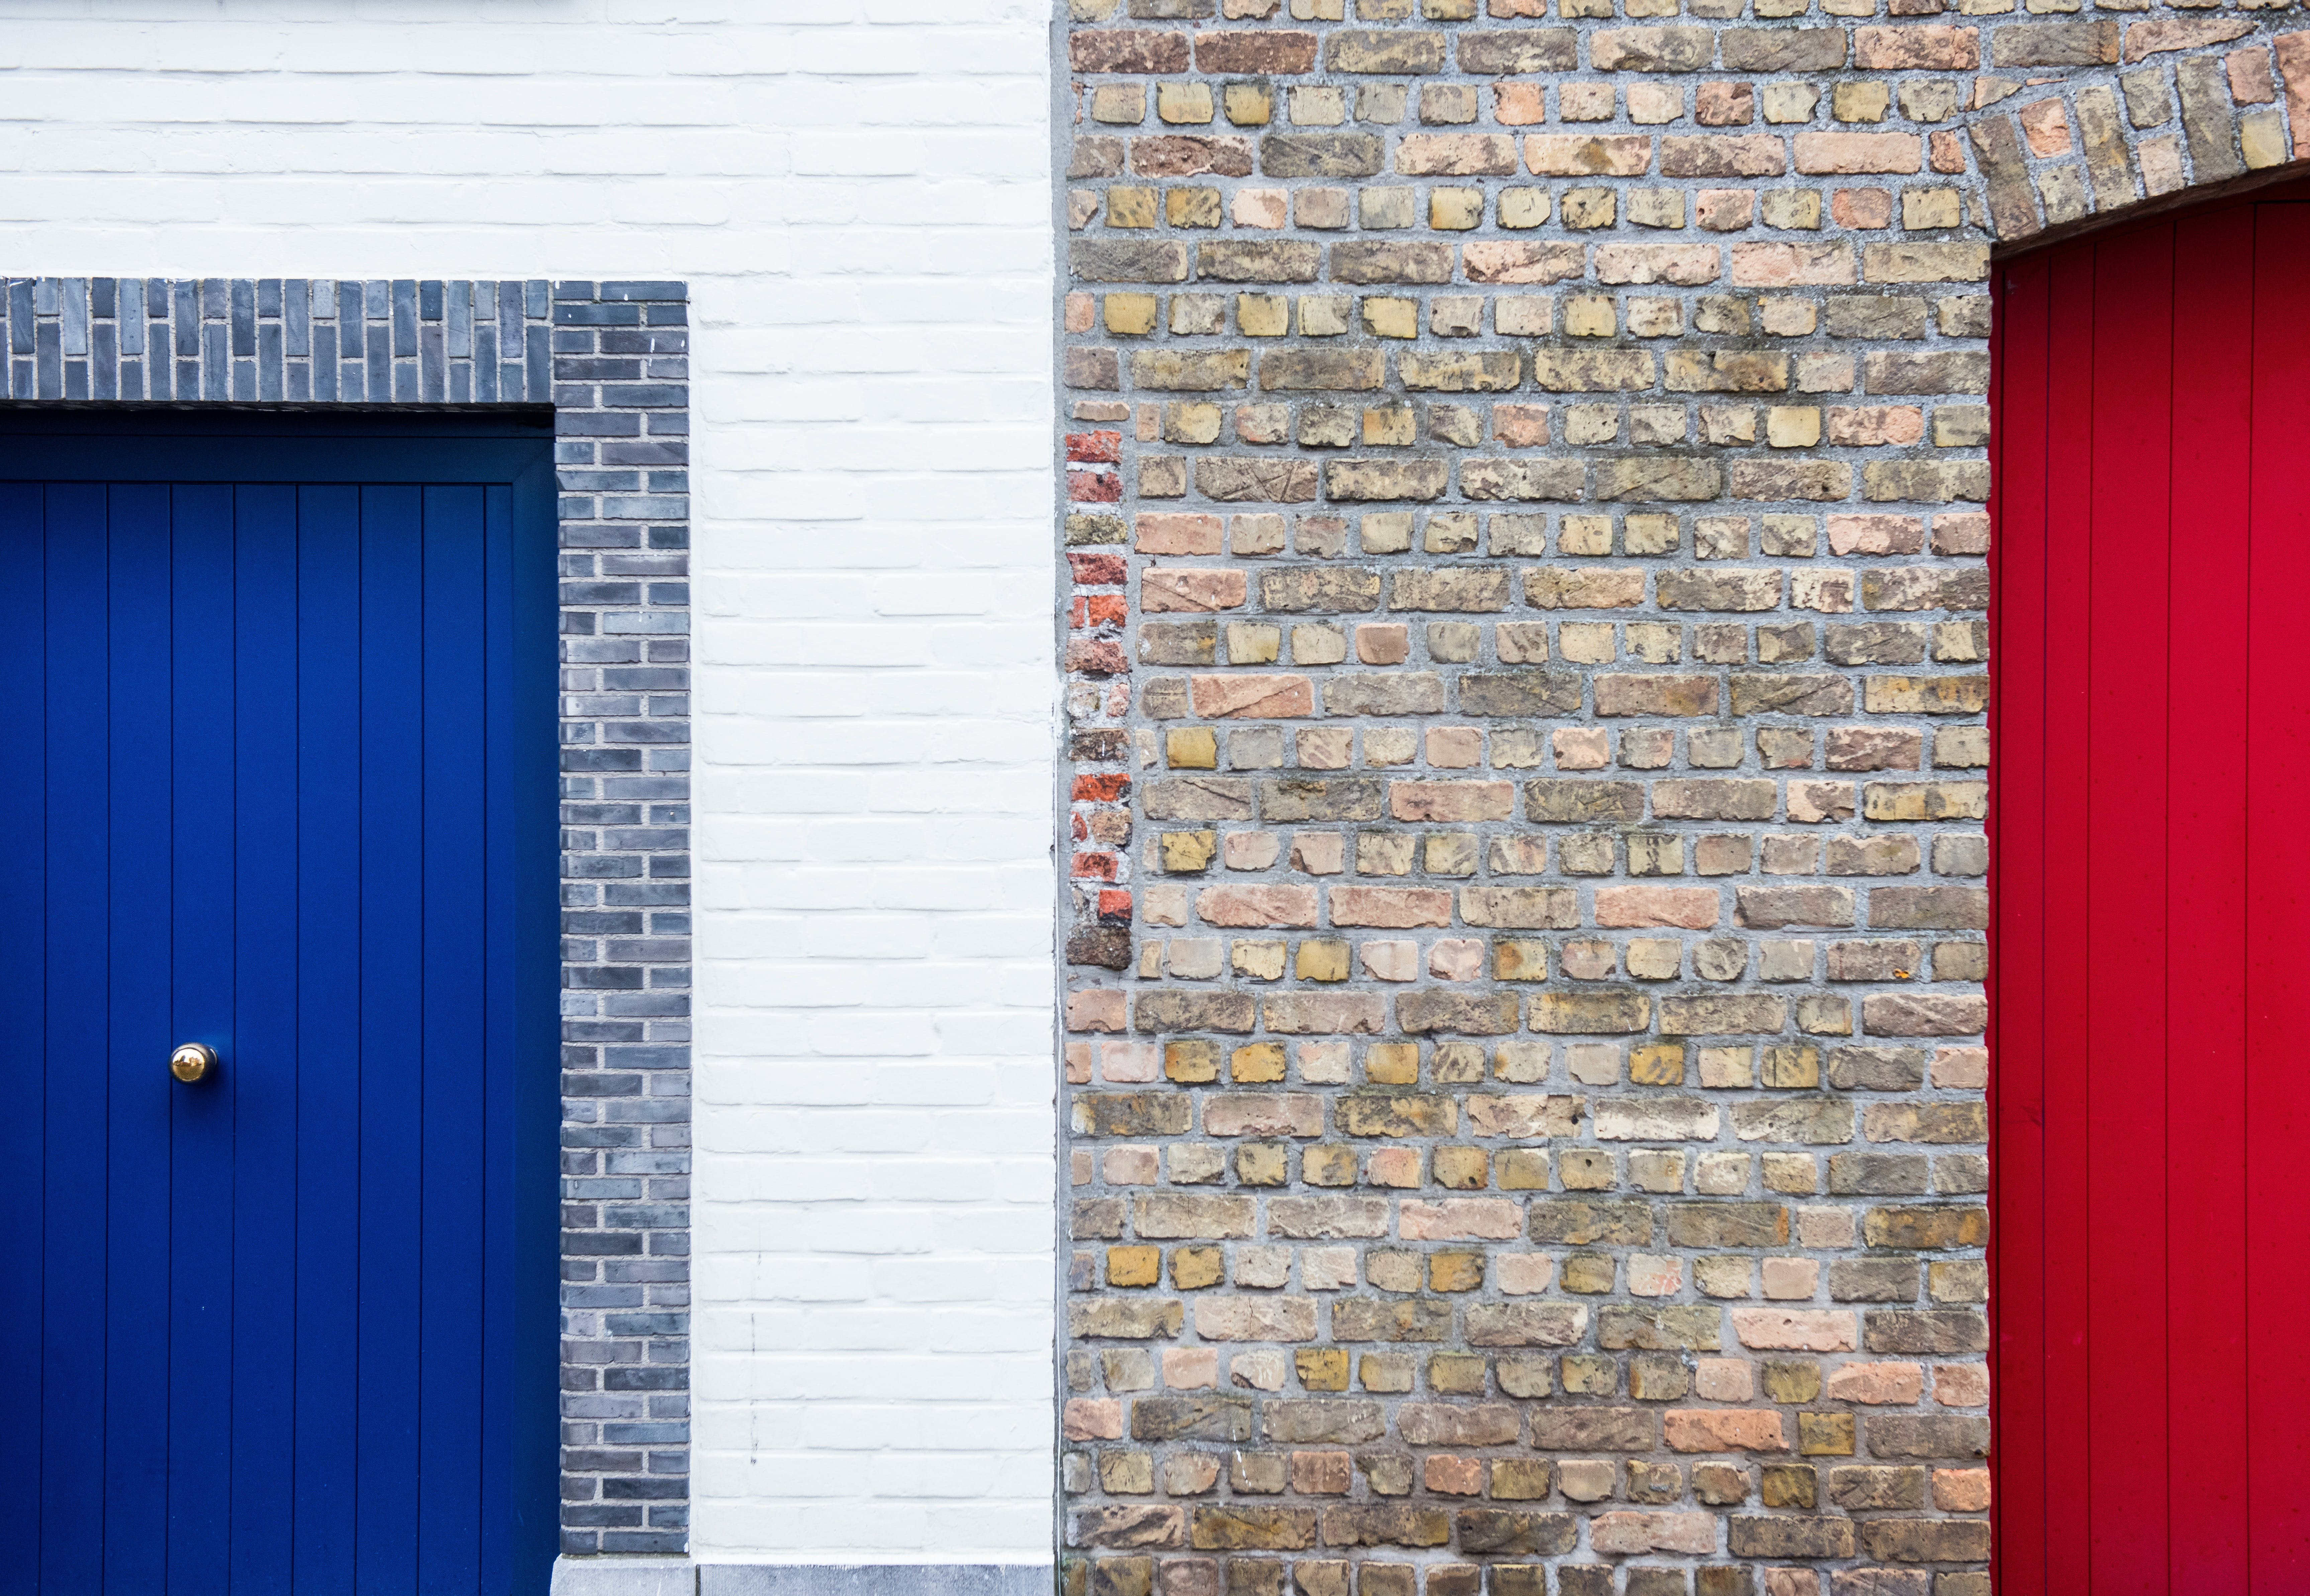 Bricked Wall in Between of Red and Blue Painted Door during Daytime